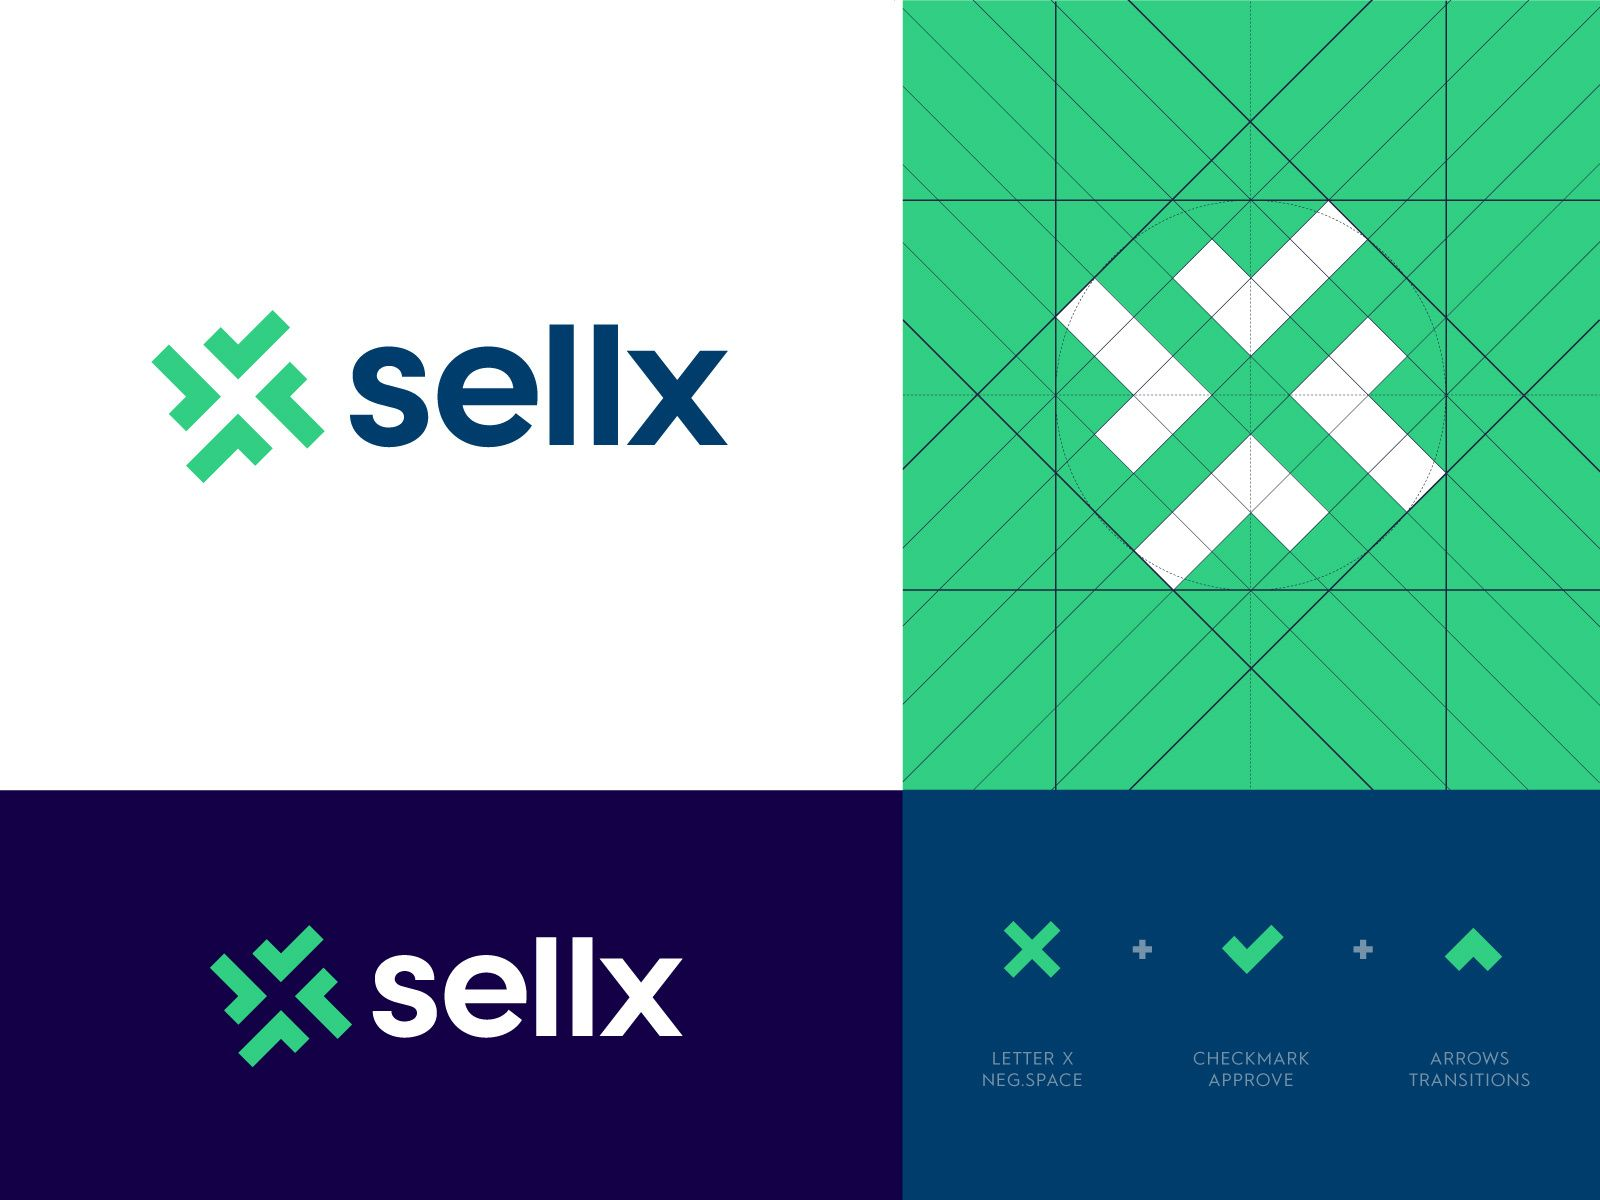 Sellx Approved Logo Design (With images) Logos design